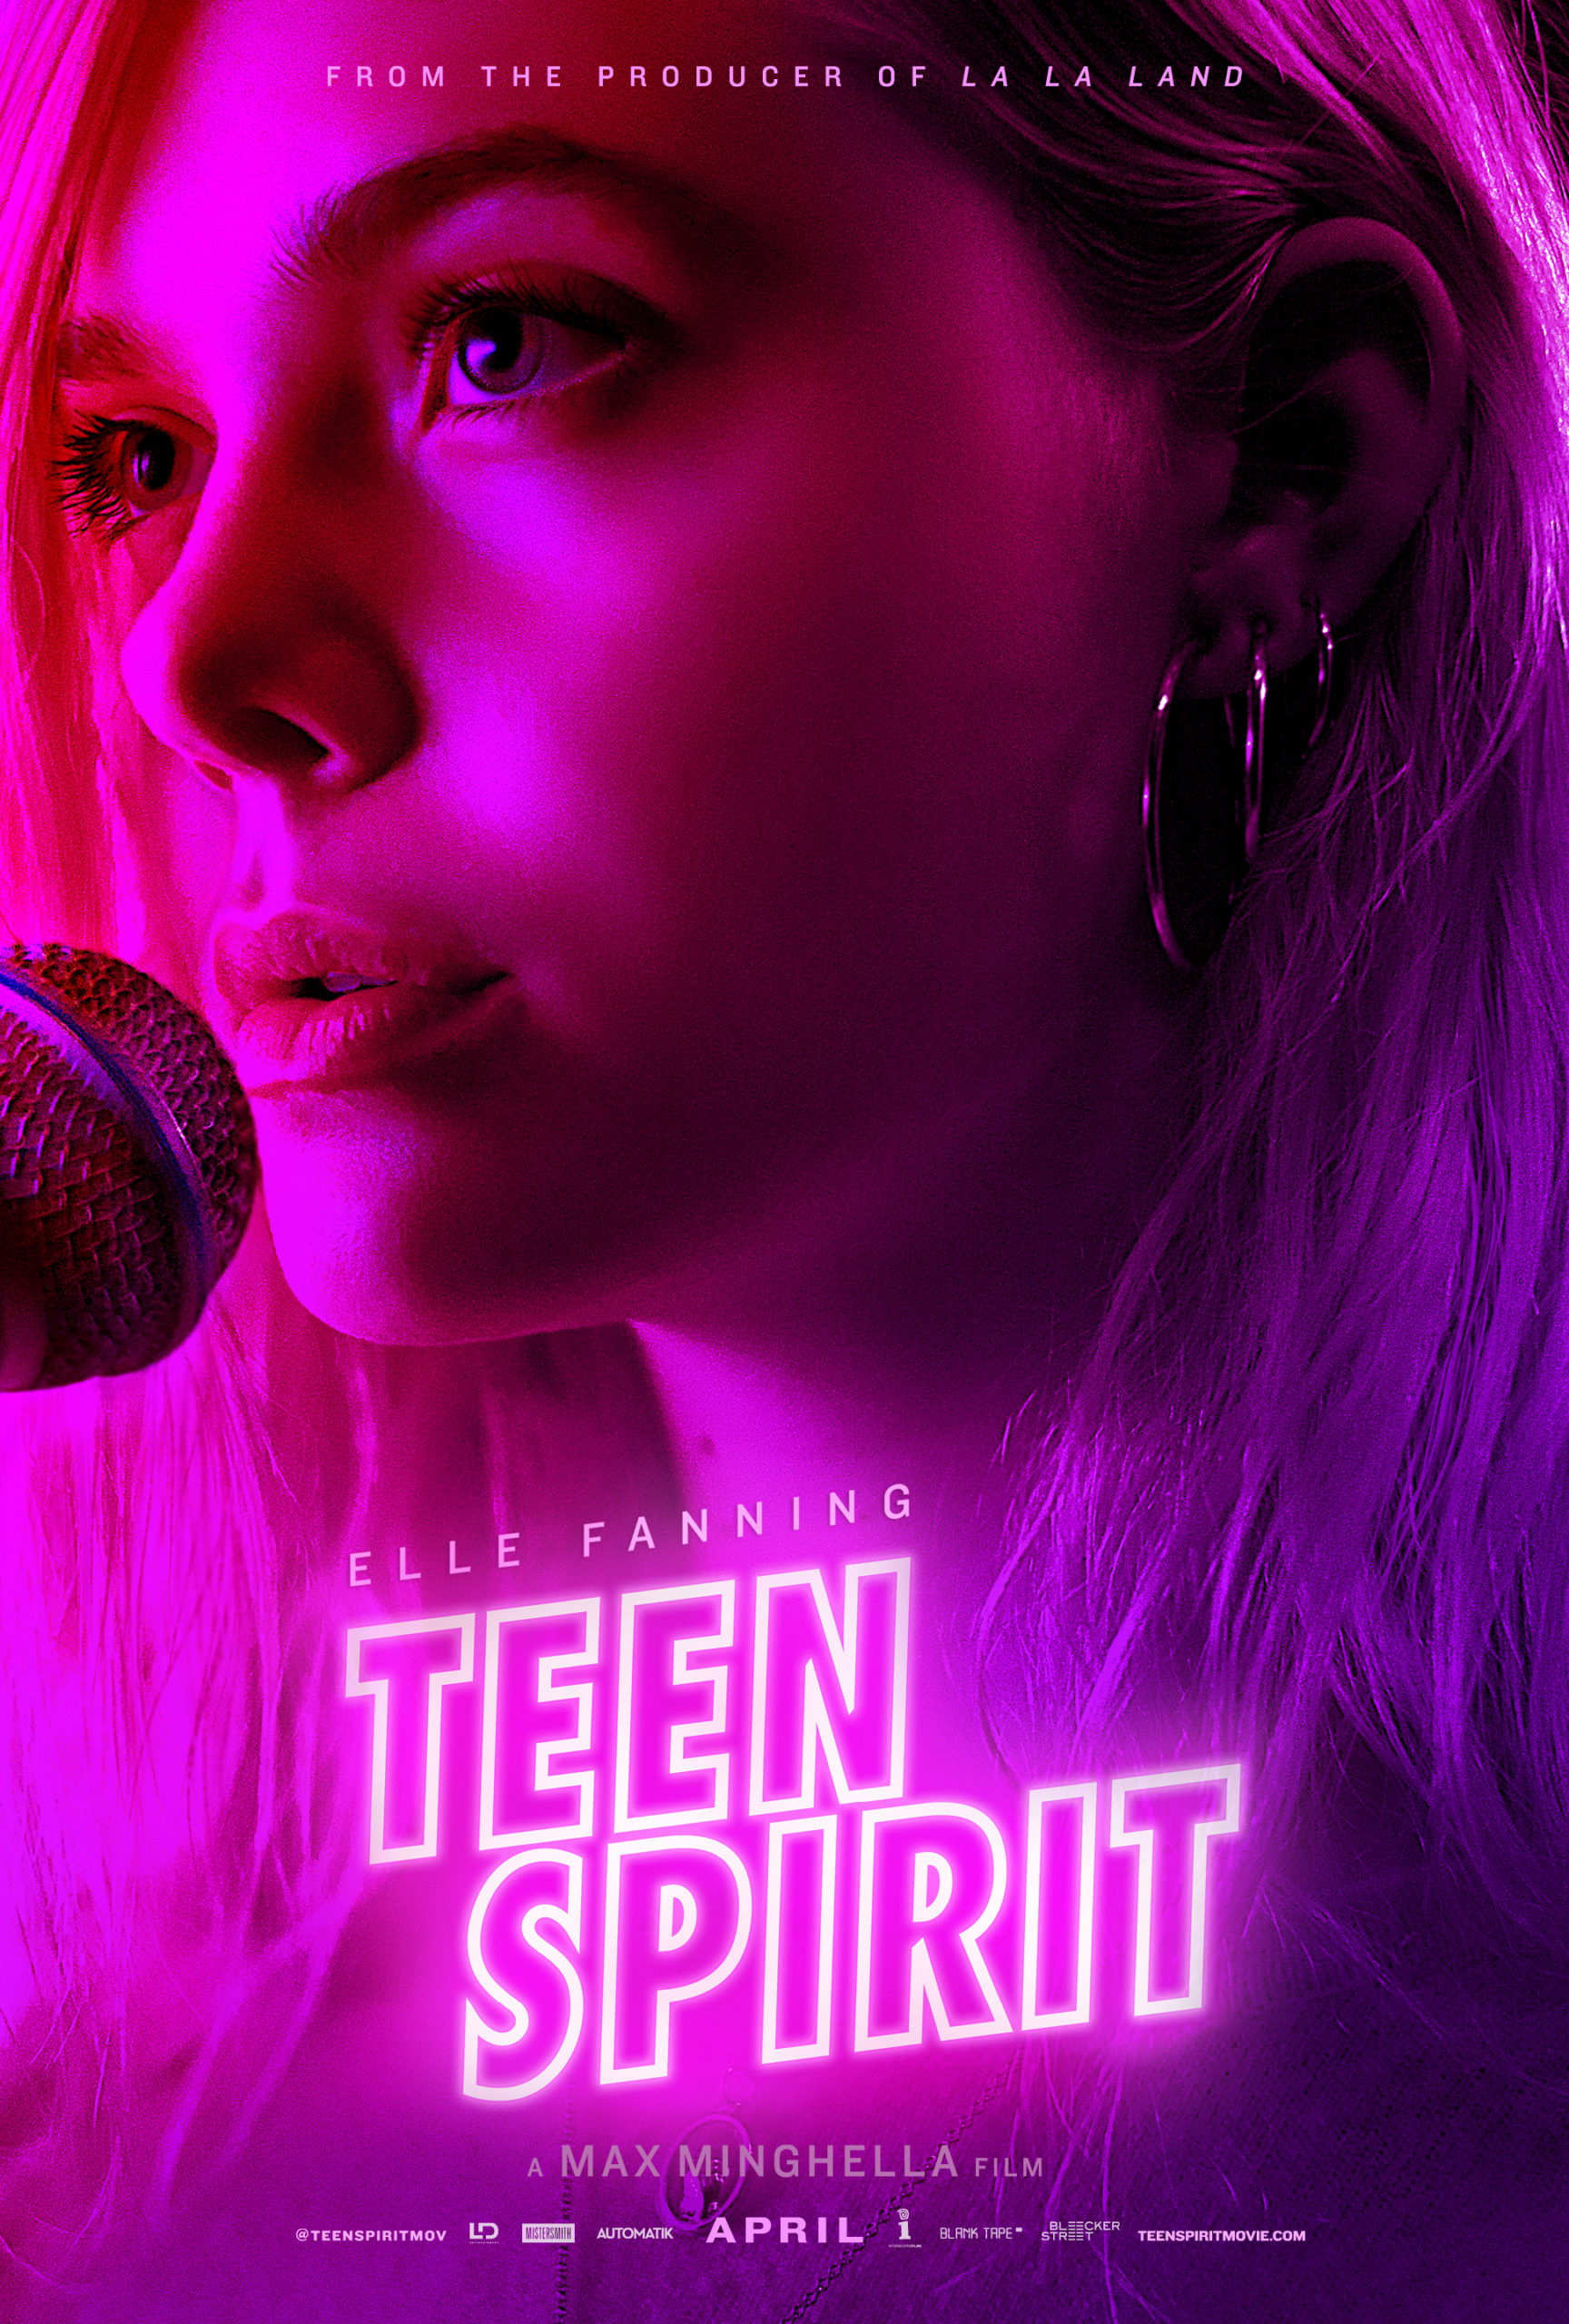 Poster for Teen Spirit of movies you missed with a close up of Elle Fanning at a microphone.